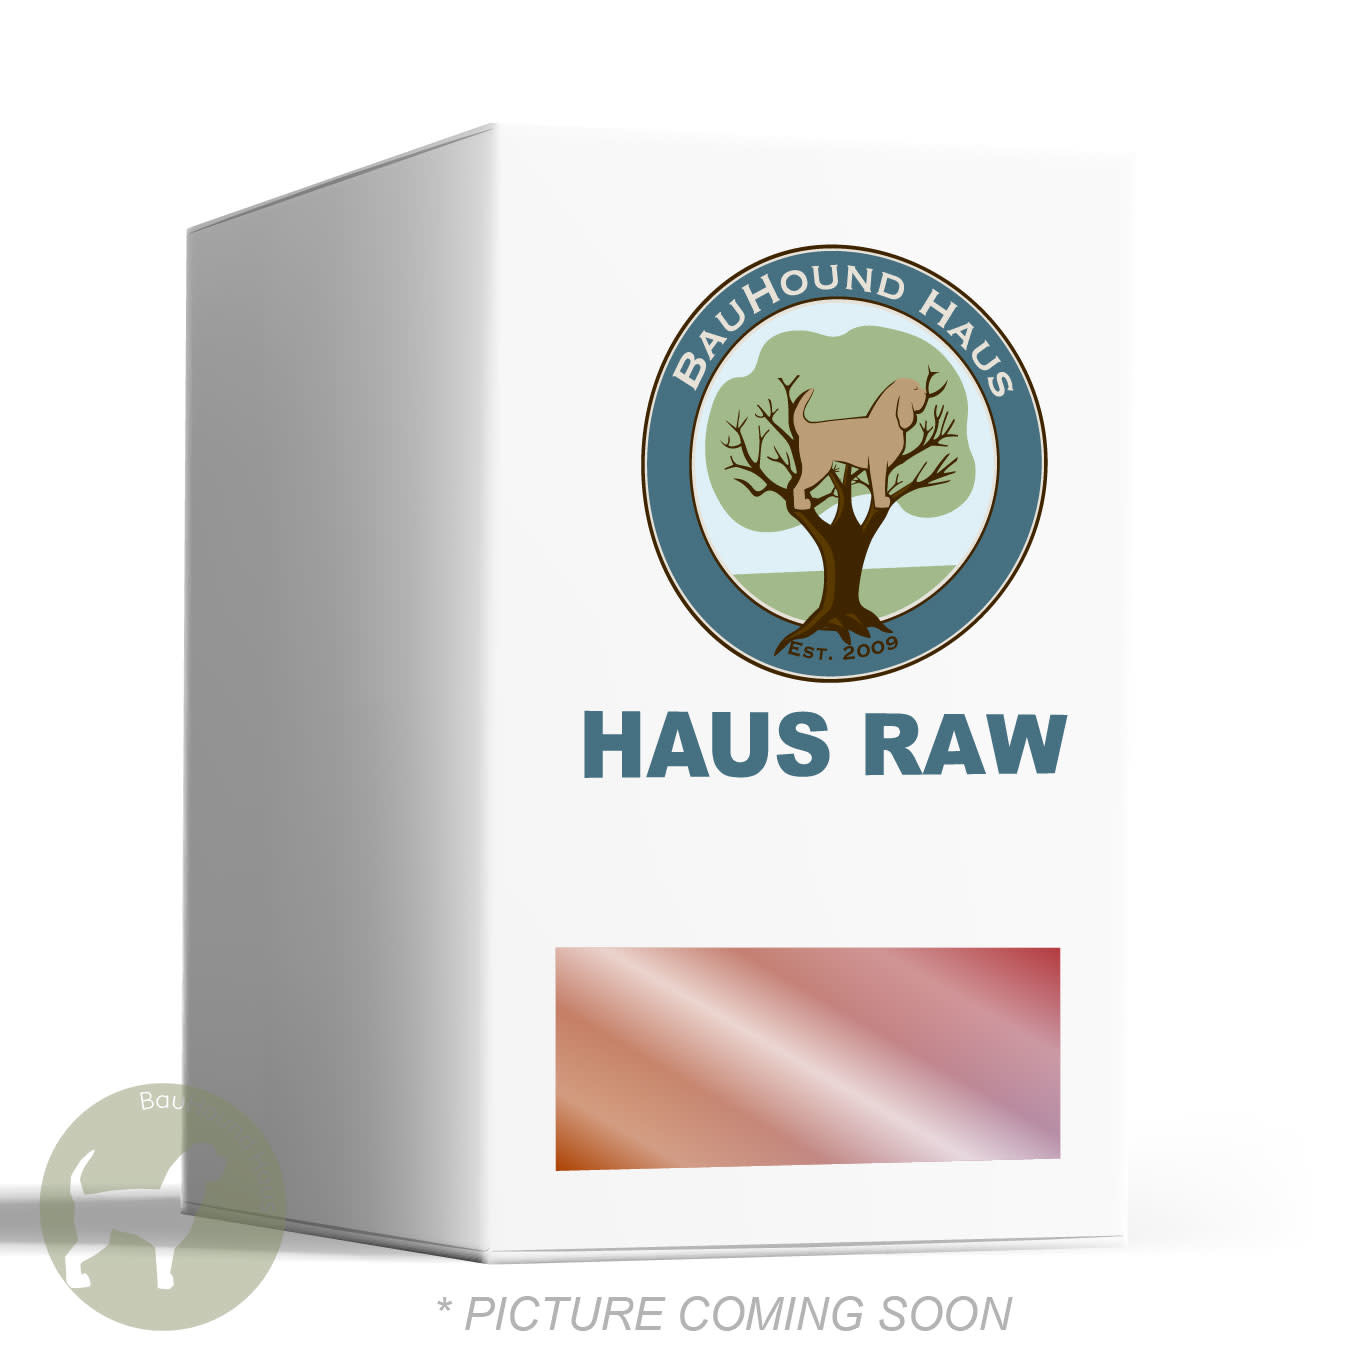 BauHound Haus BauHound Haus RAW Turkey Dog Food, 4lb